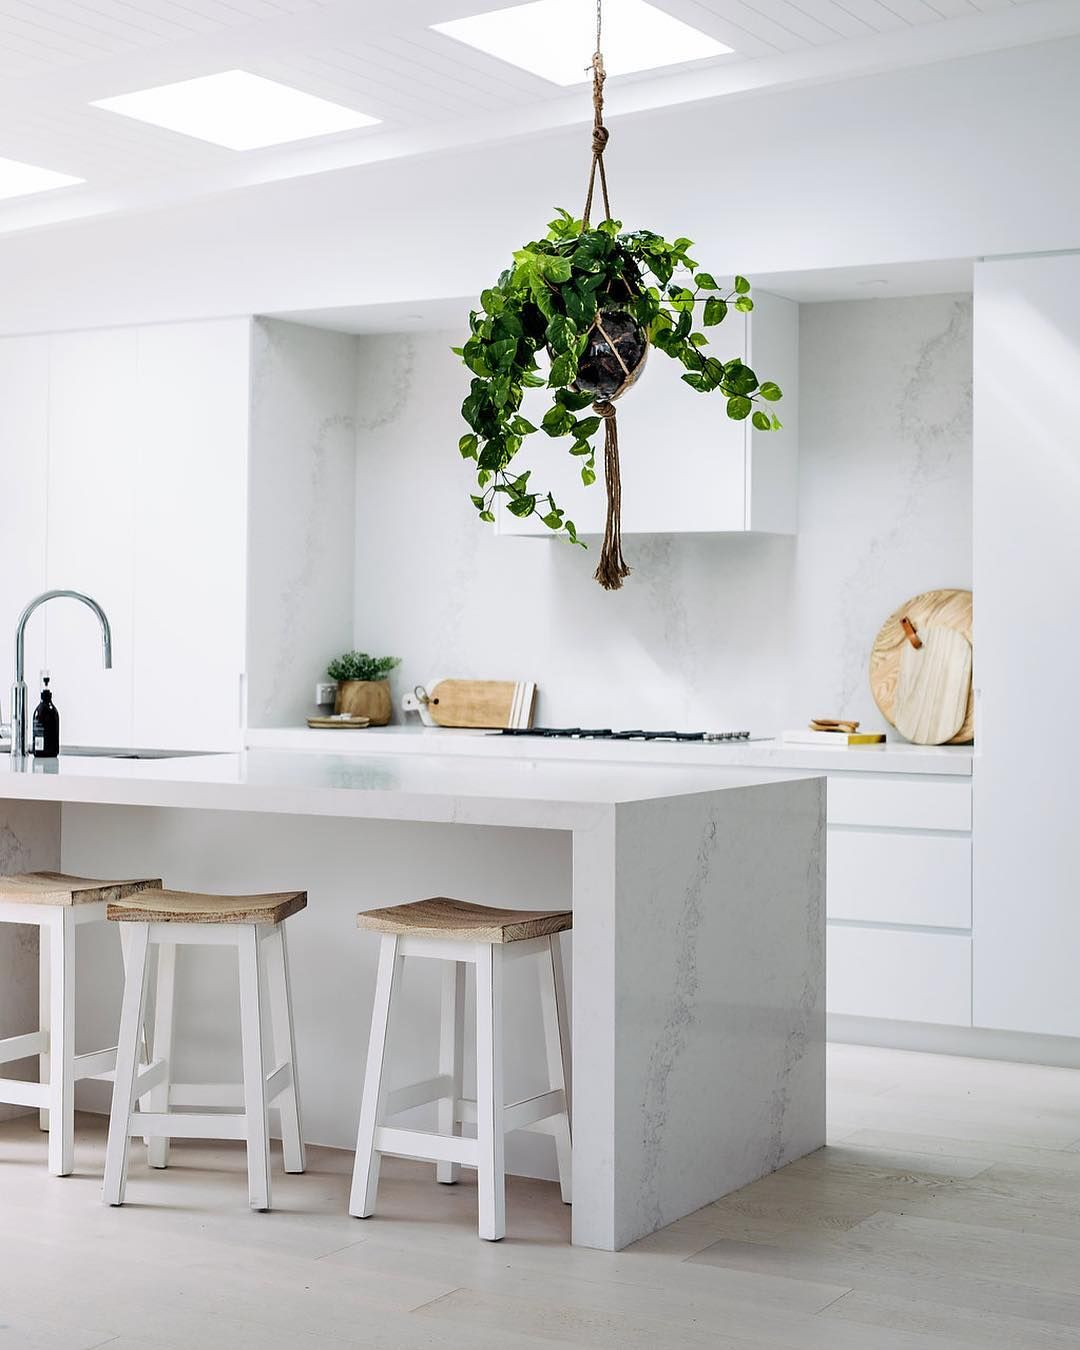 5 'Must-Haves' You Need In Your Dream Kitchen